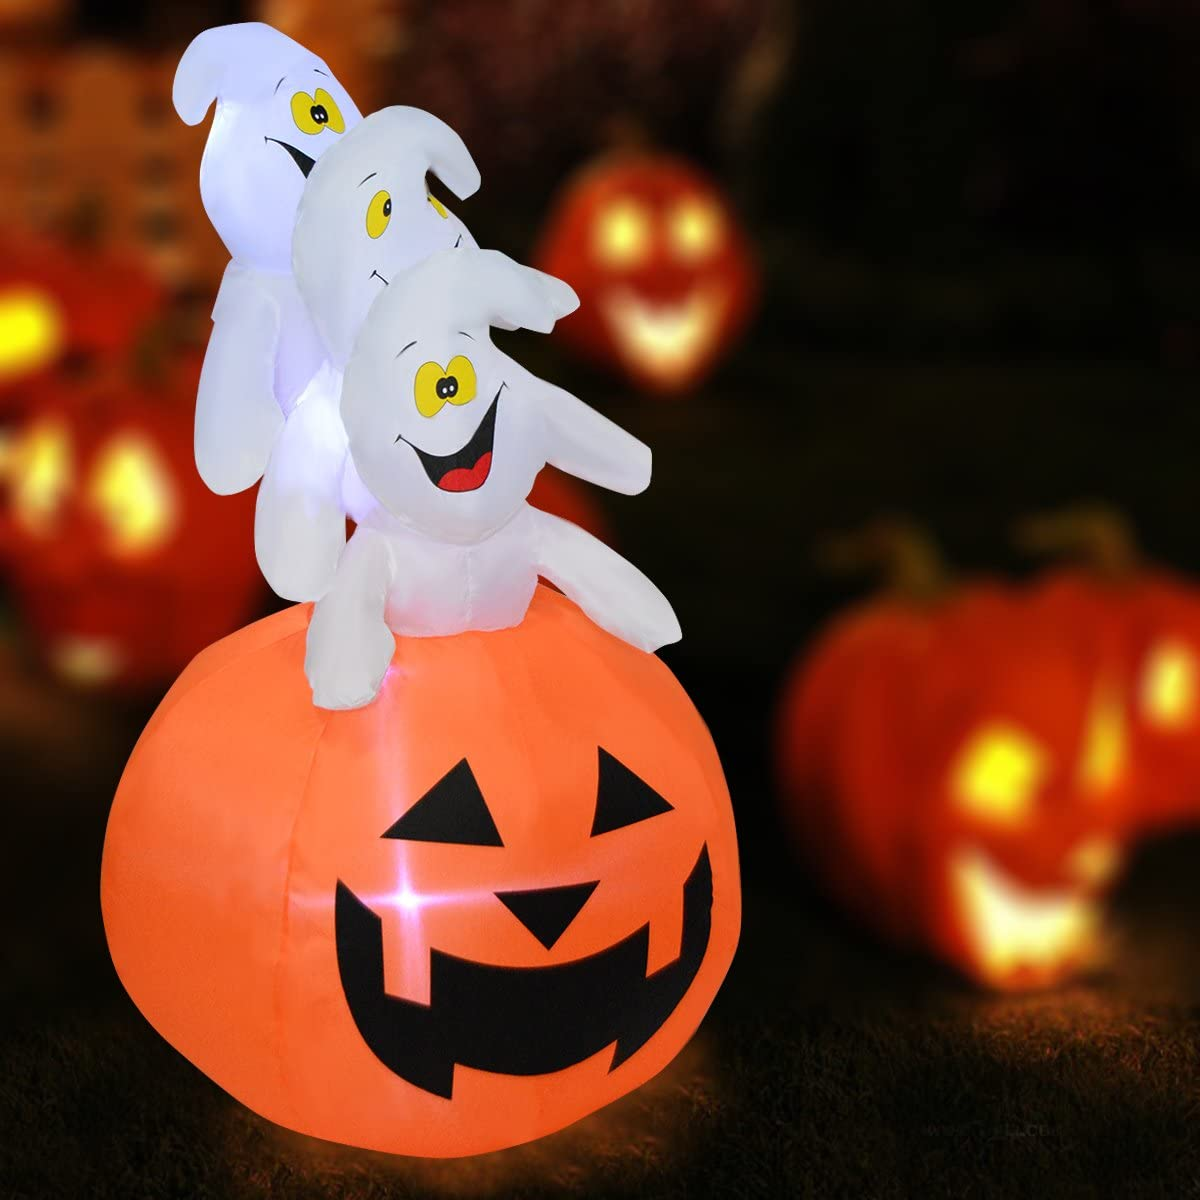 Lawn and Garden COSTWAY 1.5M Inflatable Halloween Pumpkin Ghost Decoration Light Up Festival Decorations Outdoor Indoor for Home